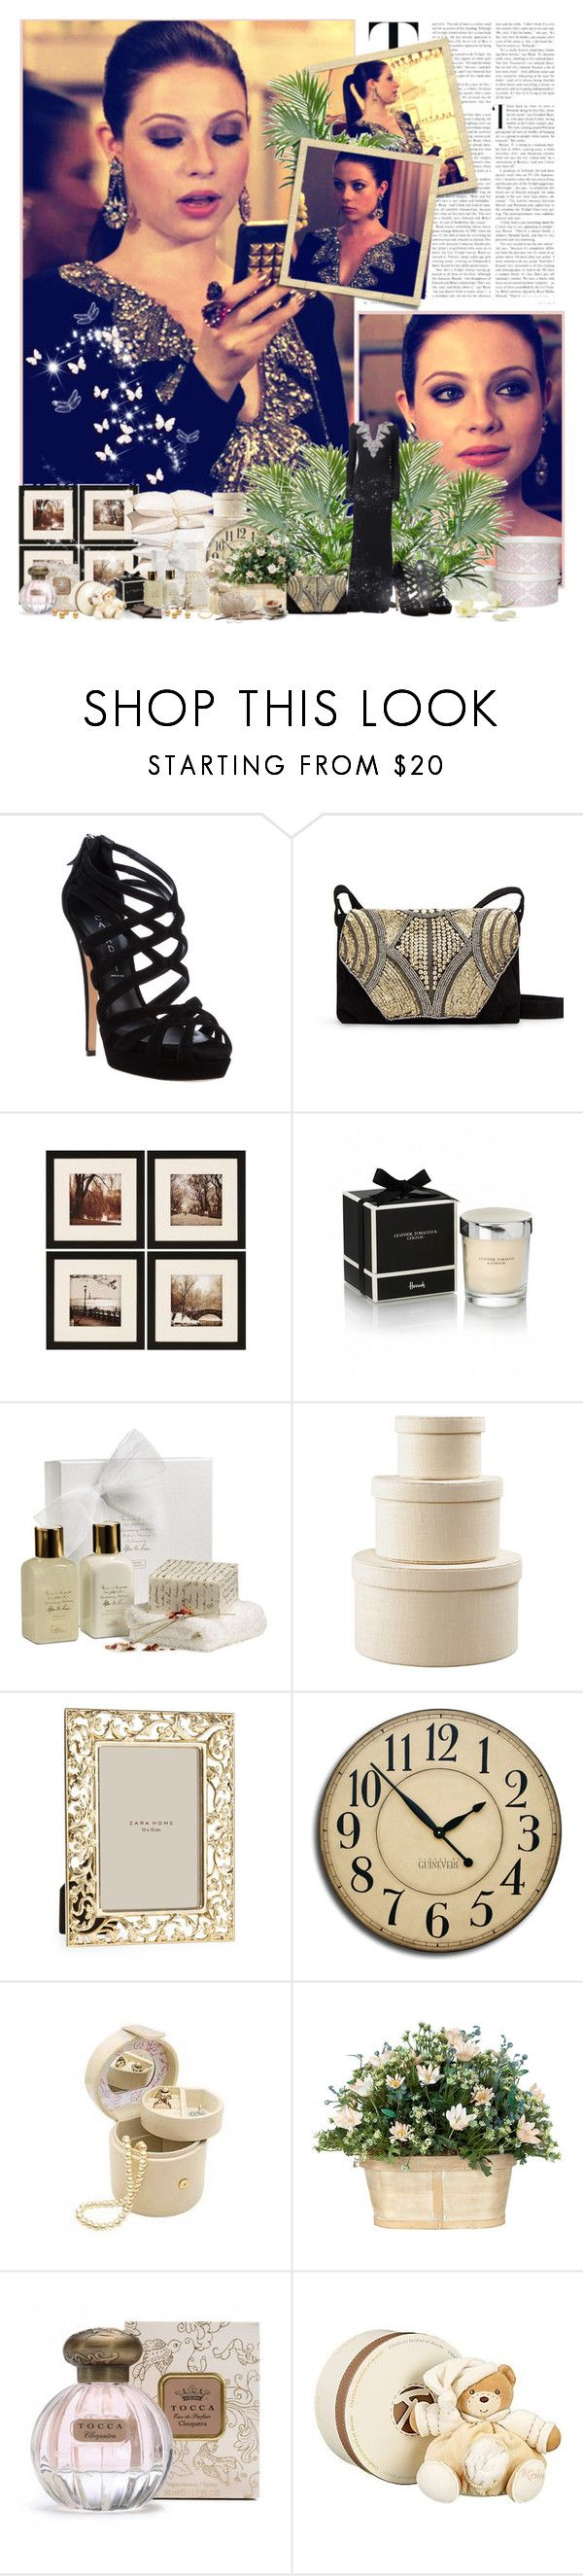 """Georgina Sparks"" by sunnygirl57 ❤ liked on Polyvore featuring Badgley Mischka, Casadei, MANGO, Harrods, Parra, Tocca and Kaloo"